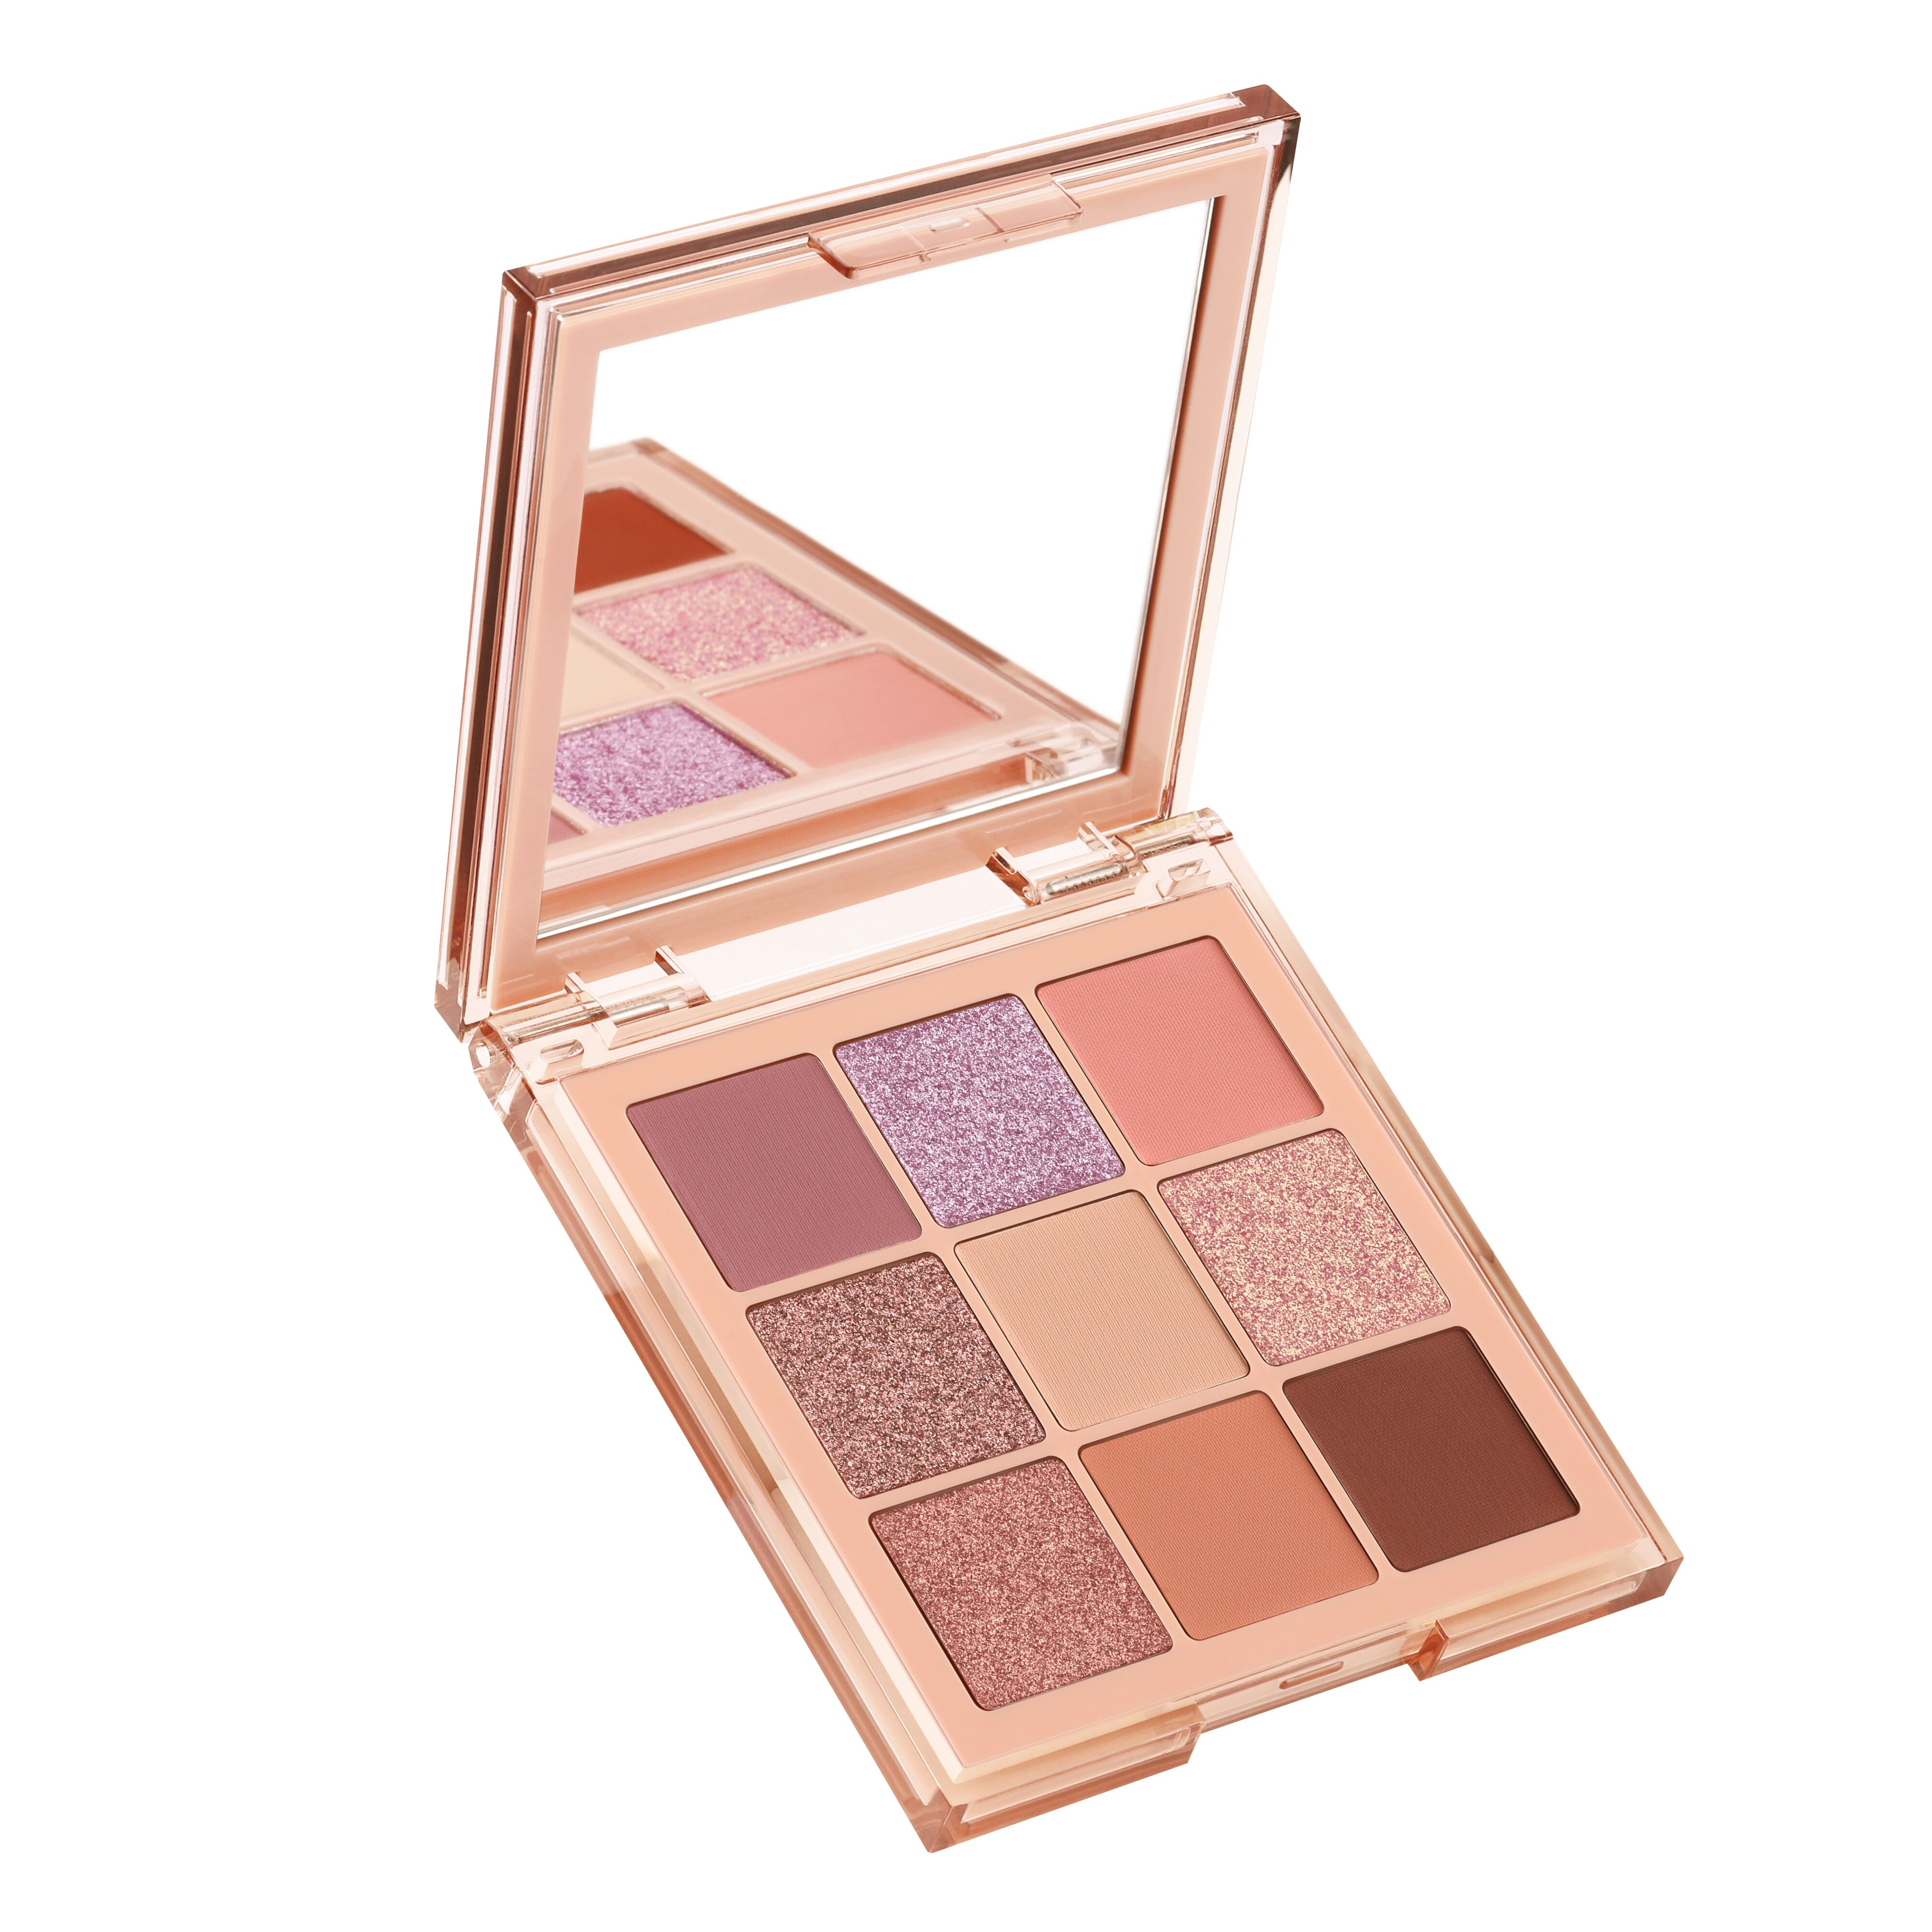 Huda Beauty NUDE Obsessions Eyeshadow Palette in Light - Shop Now